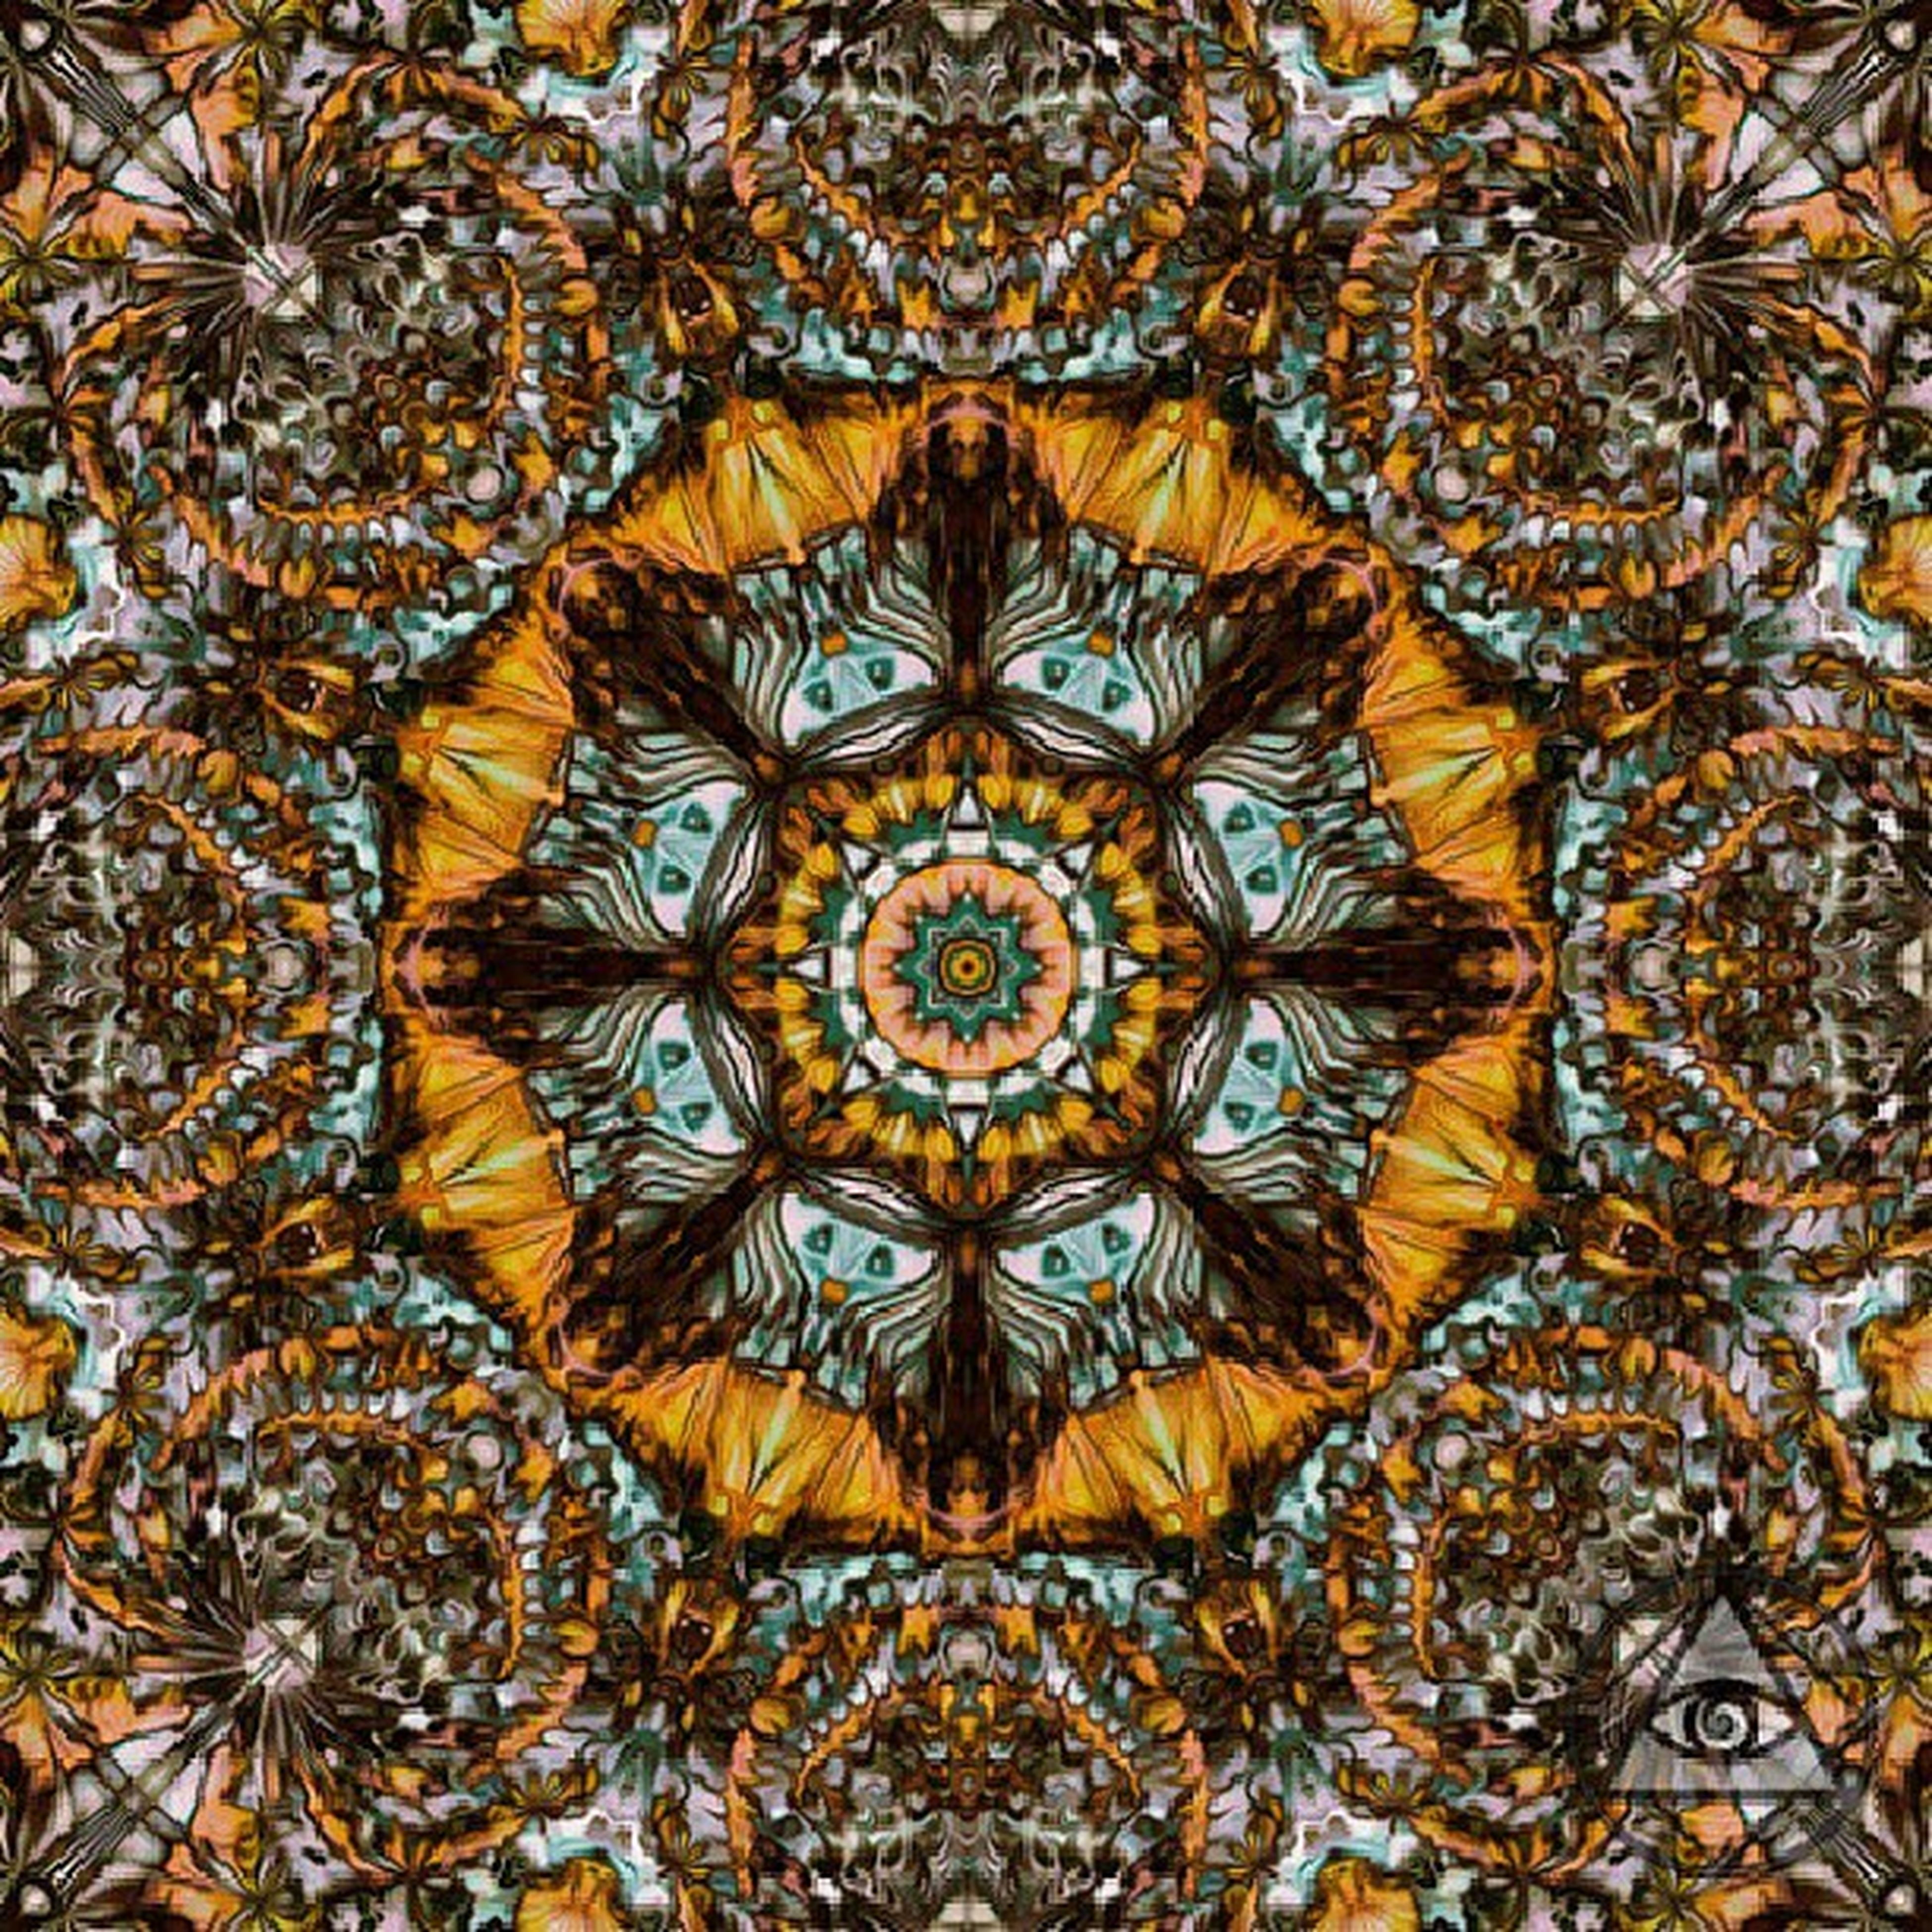 full frame, pattern, backgrounds, design, indoors, ornate, art and craft, textured, circle, art, floral pattern, creativity, close-up, no people, decoration, carving - craft product, ceiling, high angle view, religion, geometric shape